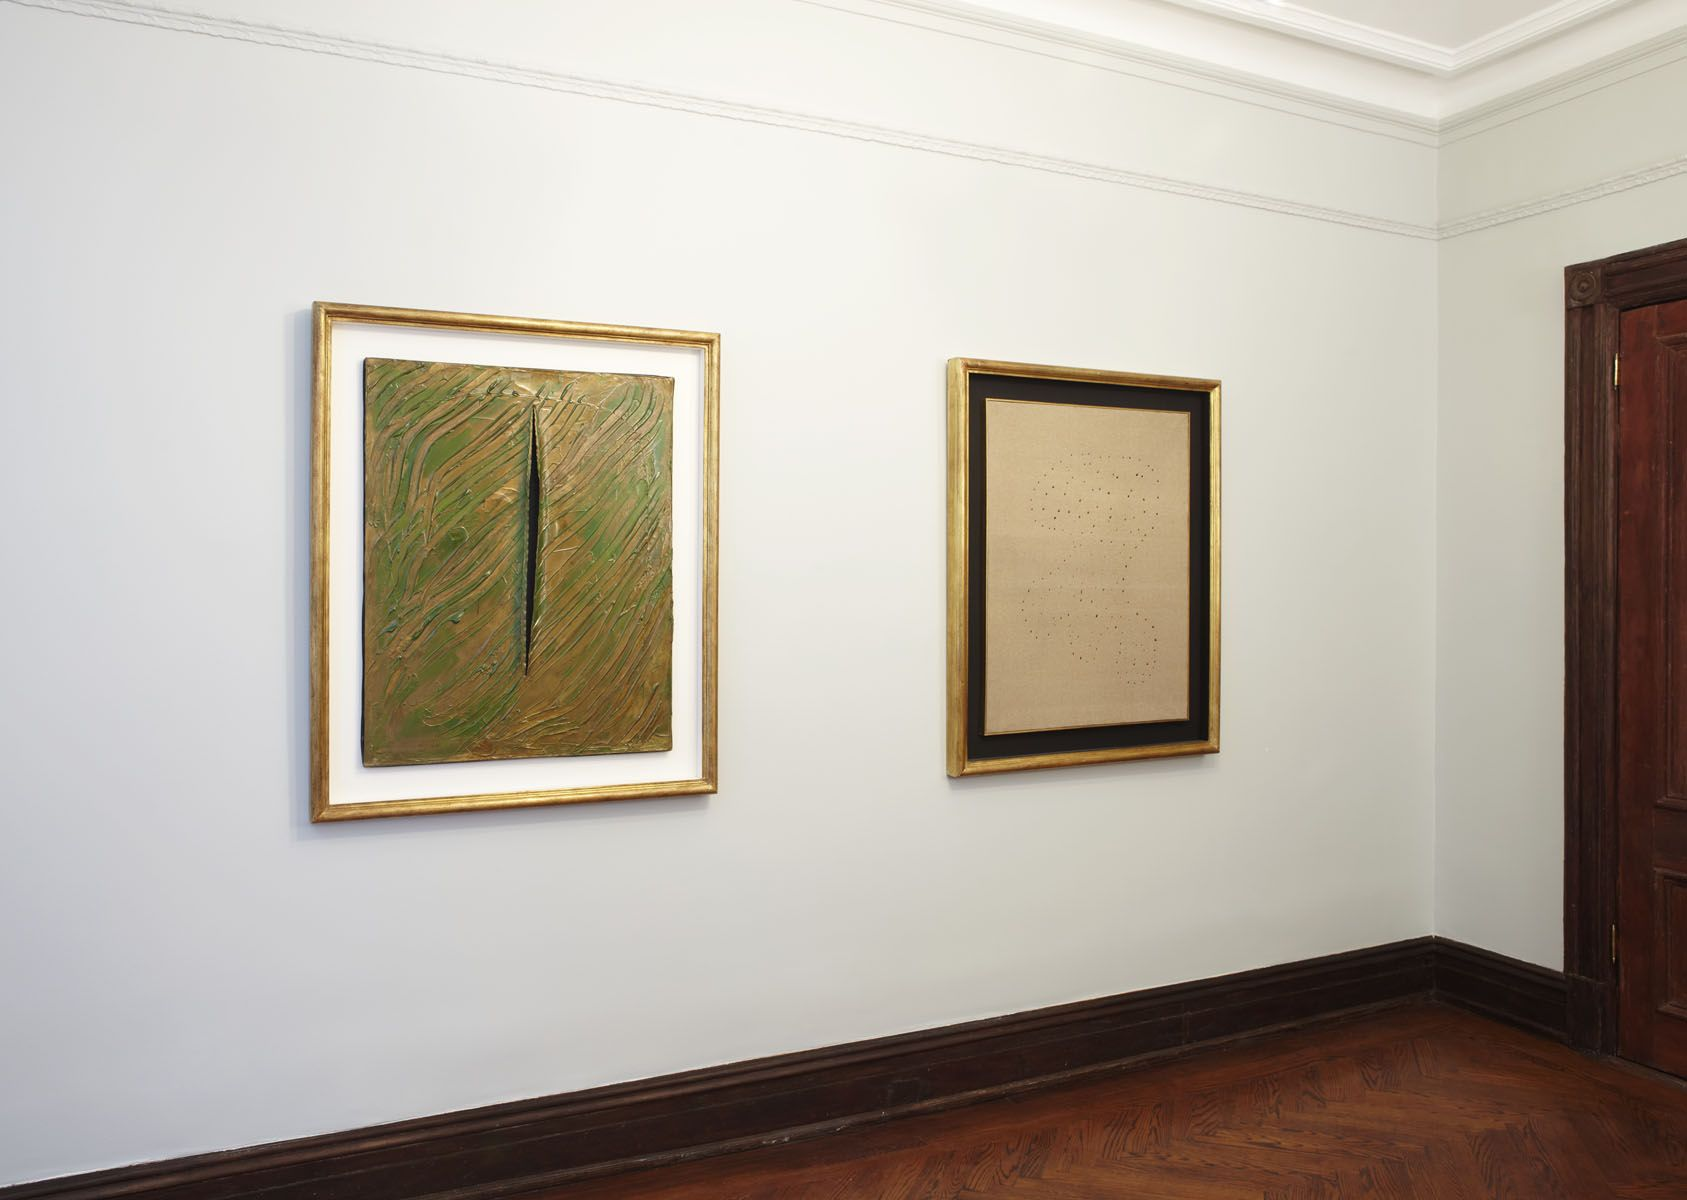 Lucio Fontana: Paintings 1956 - 1968 (Installation View), Marianne Boesky Gallery, Uptown, 2010